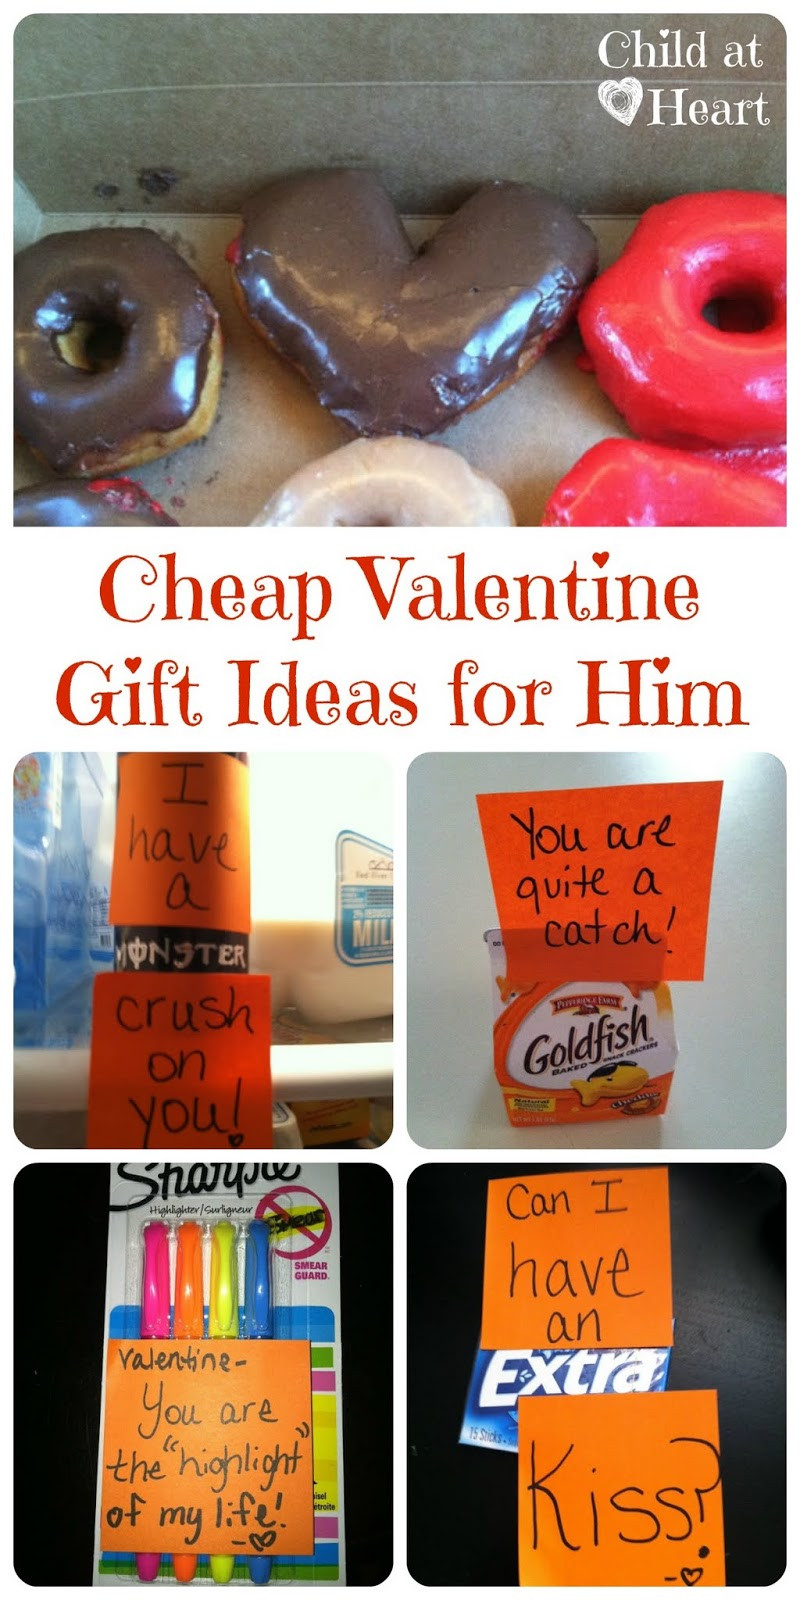 Best ideas about Valentines Gift Ideas For Boyfriend . Save or Pin Cheap Valentine Gift Ideas for Him Child at Heart Blog Now.